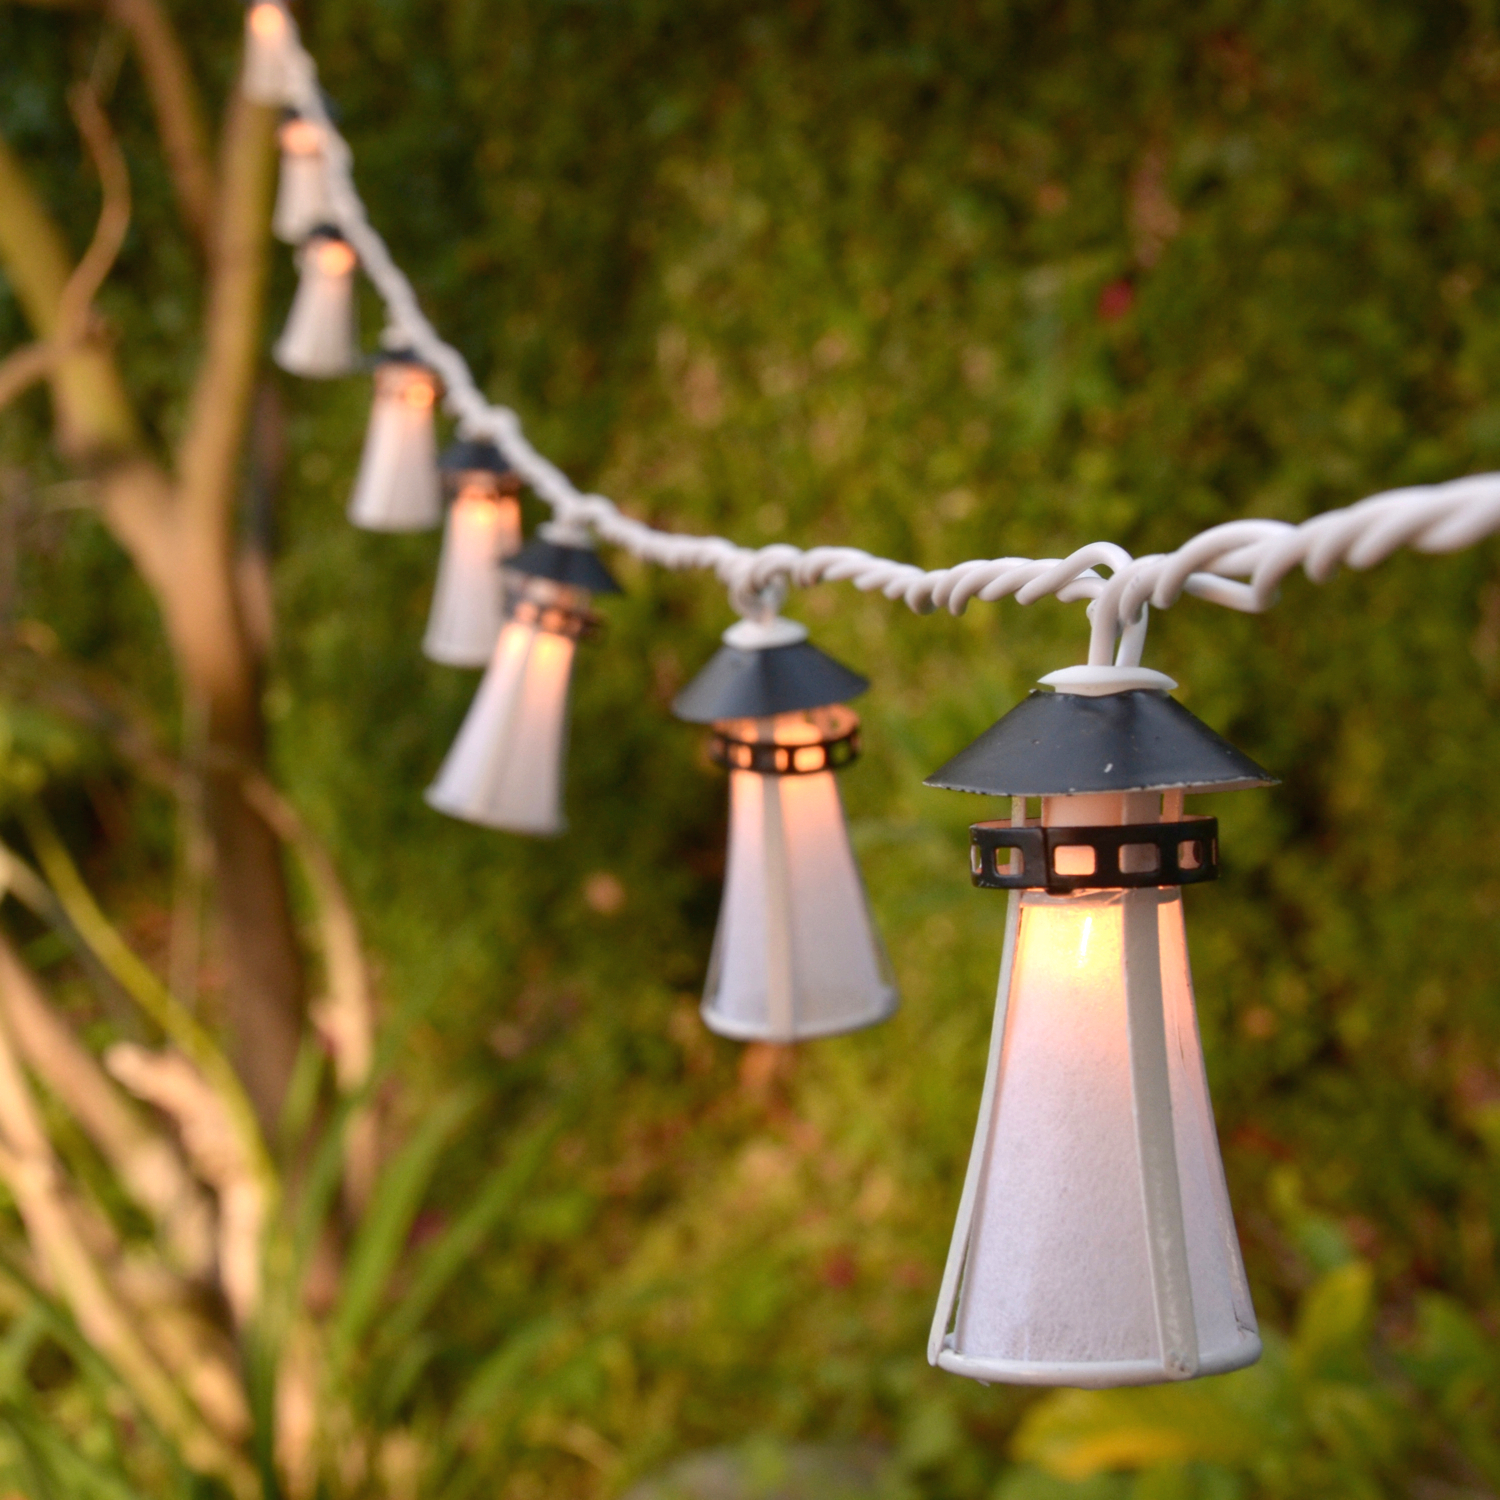 Lightscom String Lights Decorative String Lights Montauk